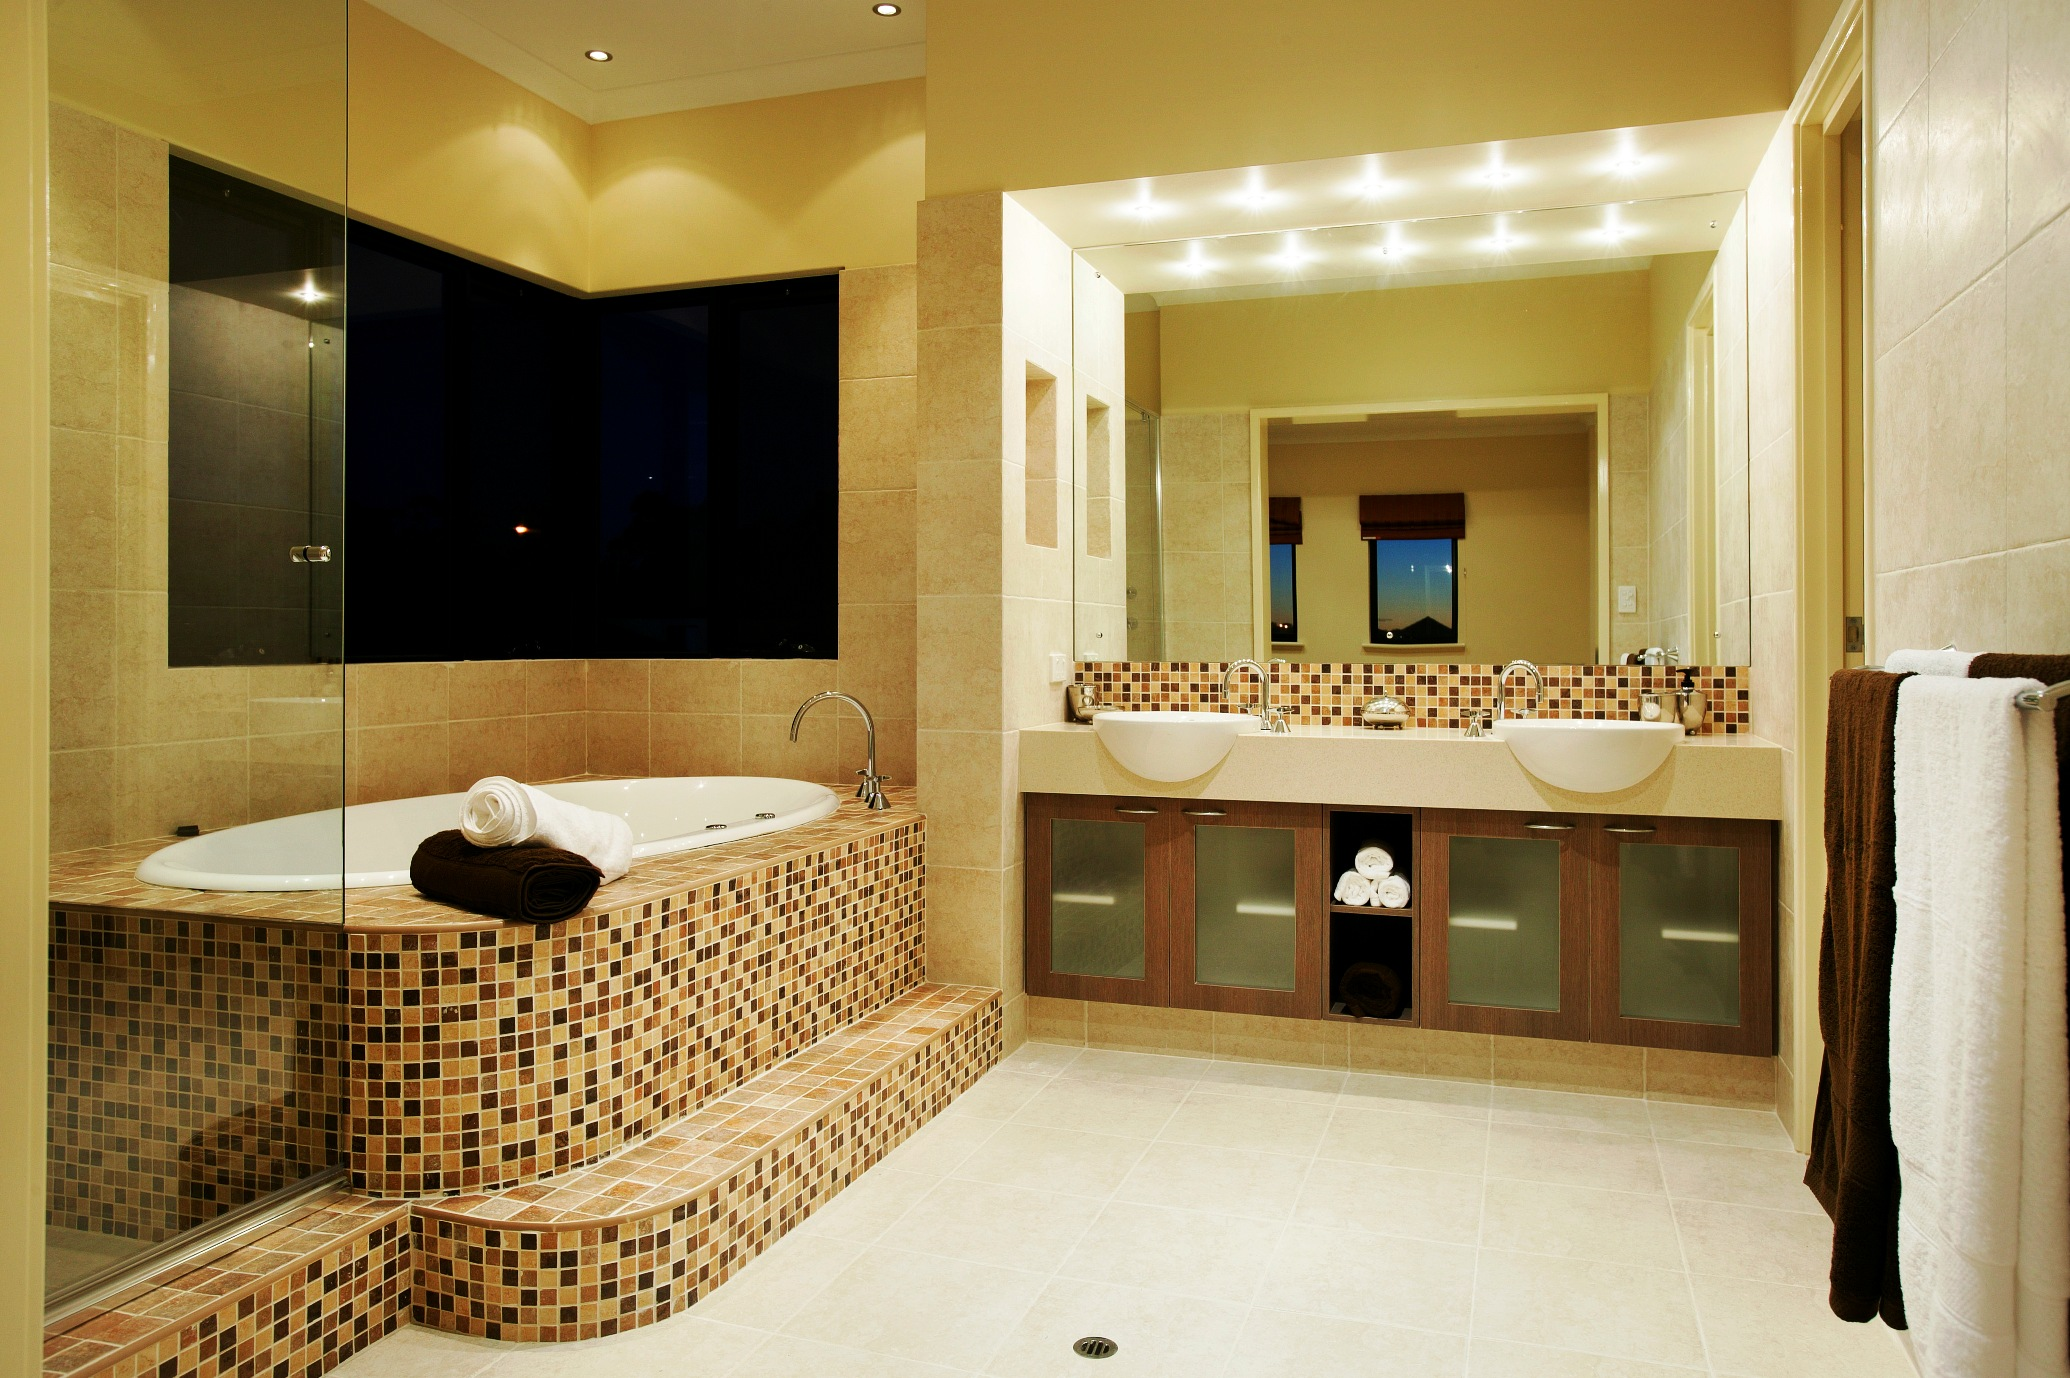 Fabulous Bathroom Design Ideas 2070 x 1378 · 789 kB · jpeg